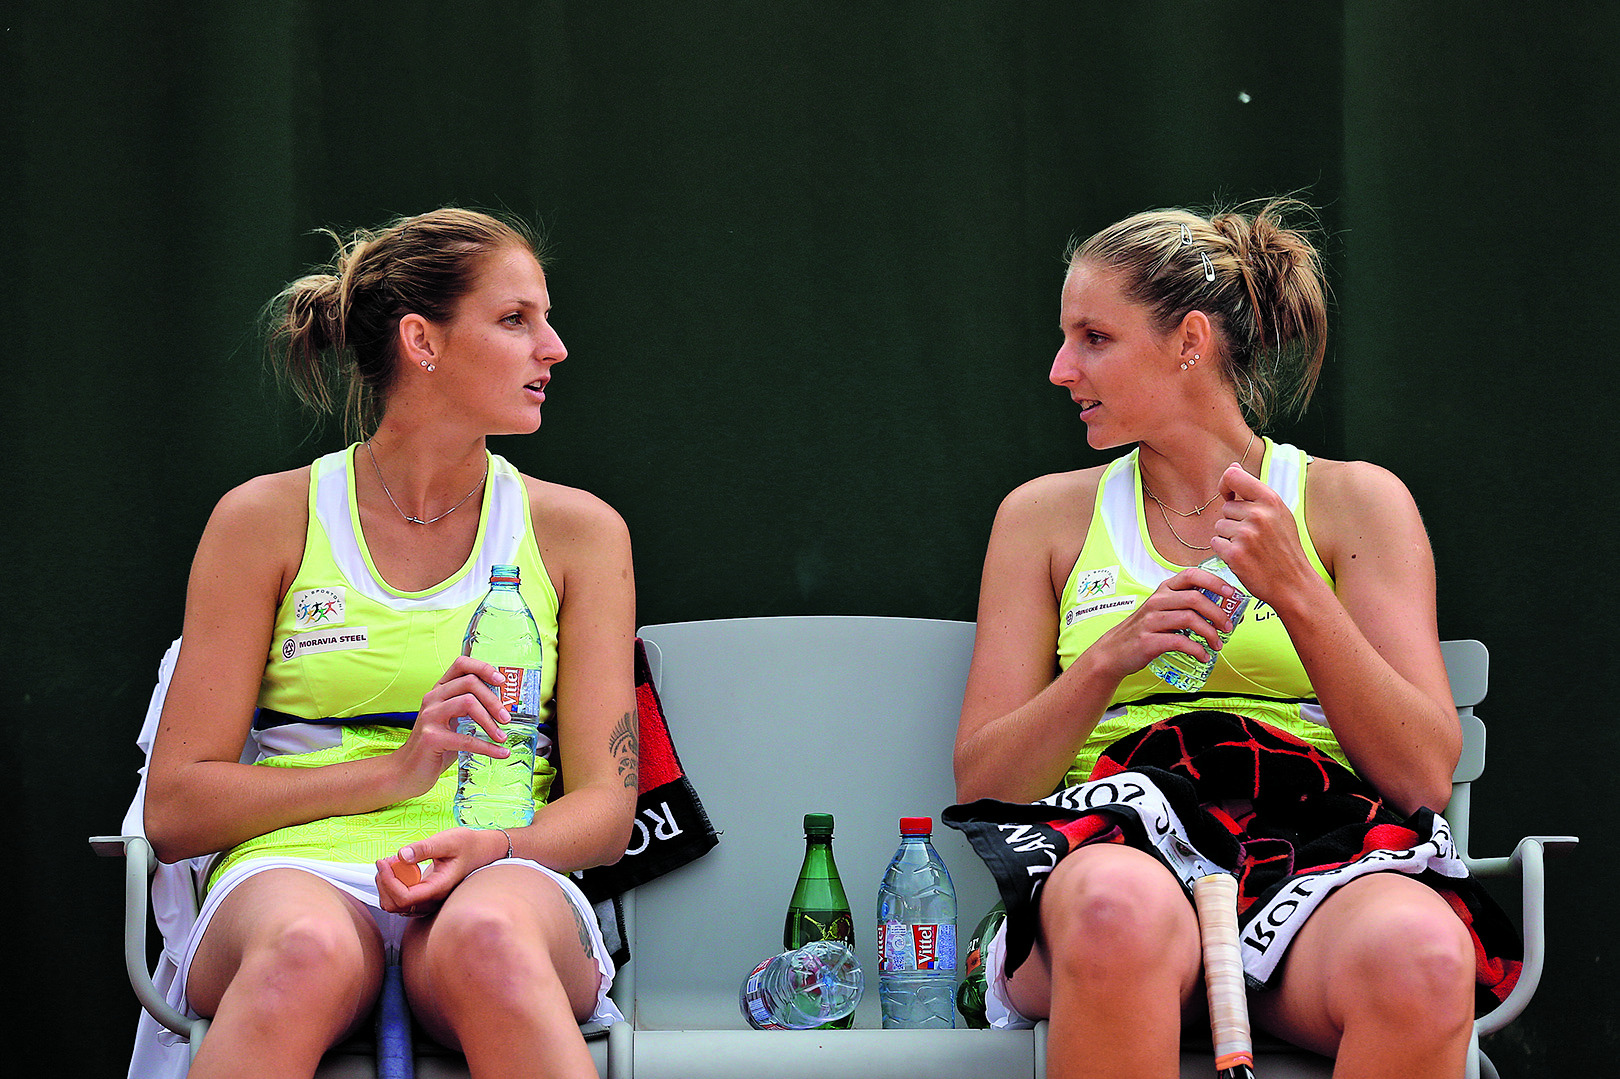 PARIS, FRANCE - MAY 28: Karolina Pliskova of Czech Republic and Kristyna Pliskova of Czech Republic talk during a break in play in the Women's Doubles match against Ajla Tomljanovic of Australia and Jarmila Gajdosova on day five of the 2015 French Open at Roland Garros on May 28, 2015 in Paris, France. (Photo by Clive Brunskill/Getty Images)